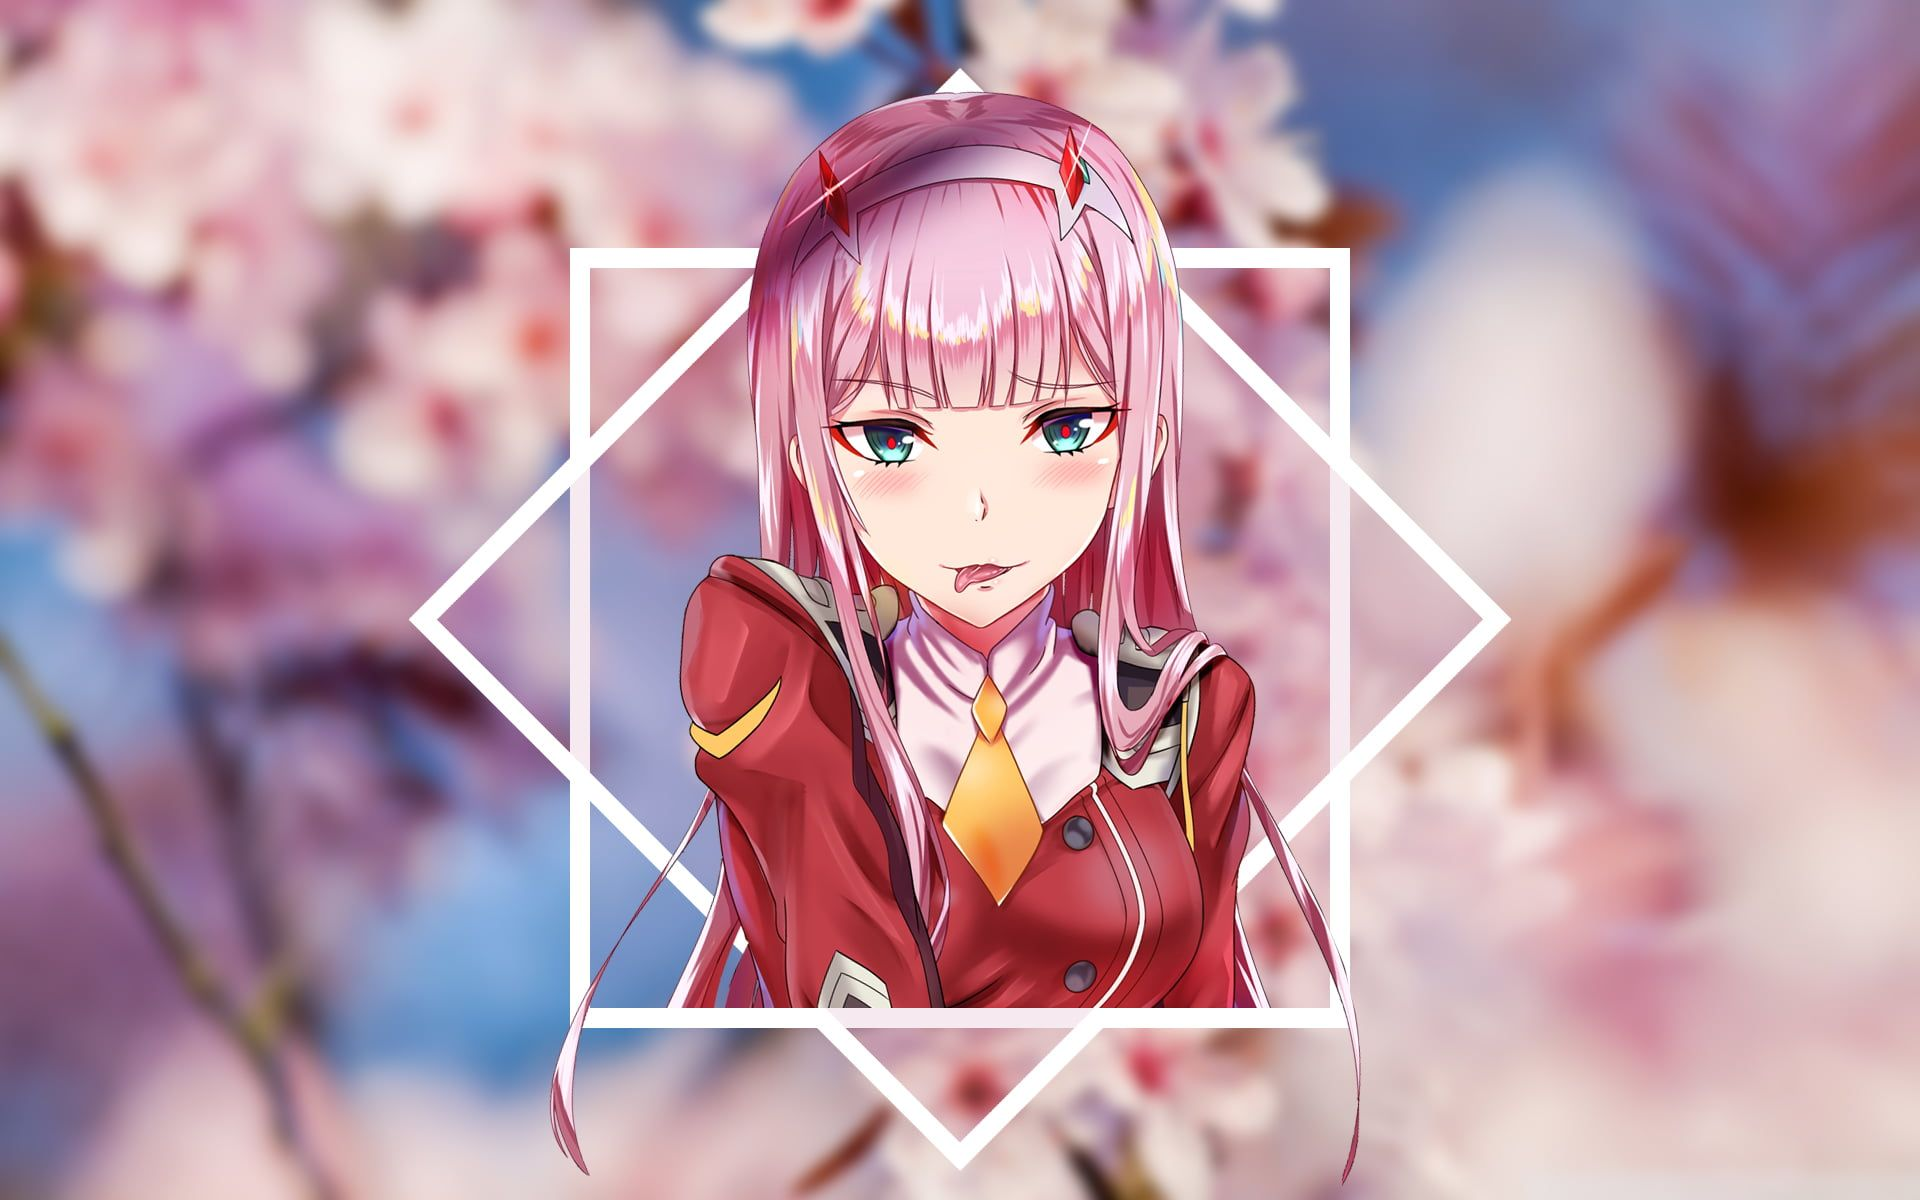 Zero Two Darling In The Franxx Code 002 Darling In The Franxx Sakura Tree Cherry Blossom 1080p Anime Computer Wallpaper Sakura Tree Darling In The Franxx